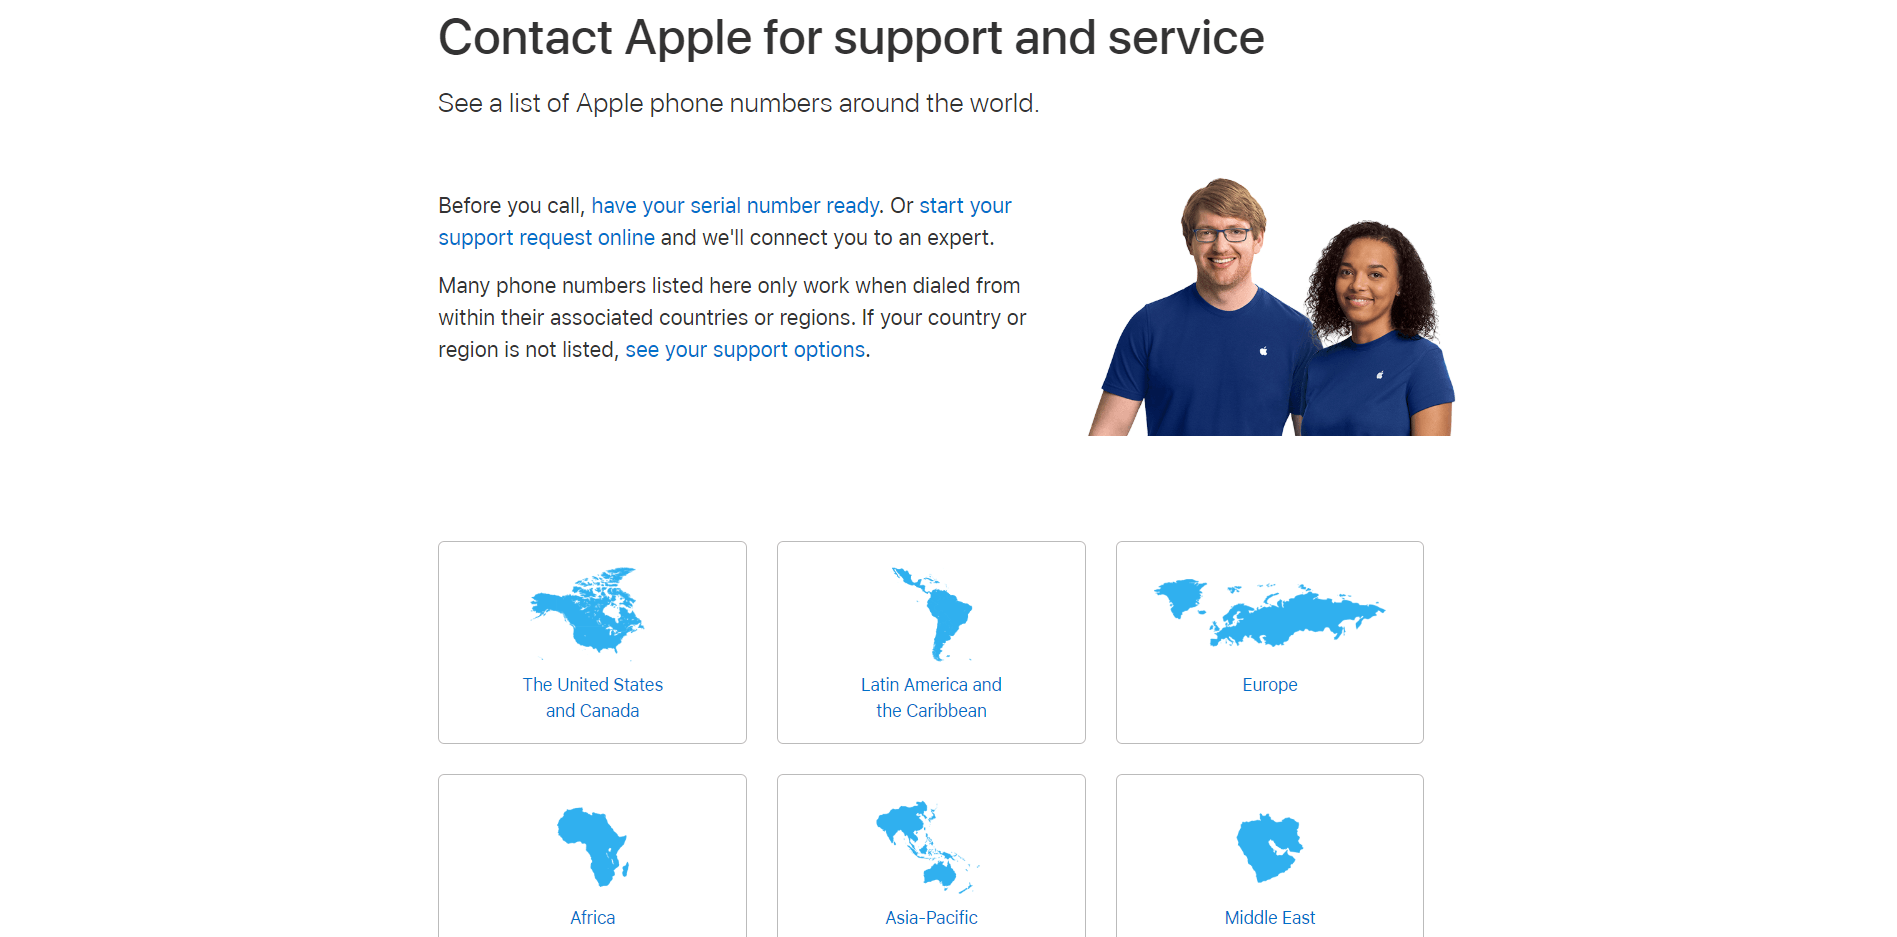 Apple Support and Service